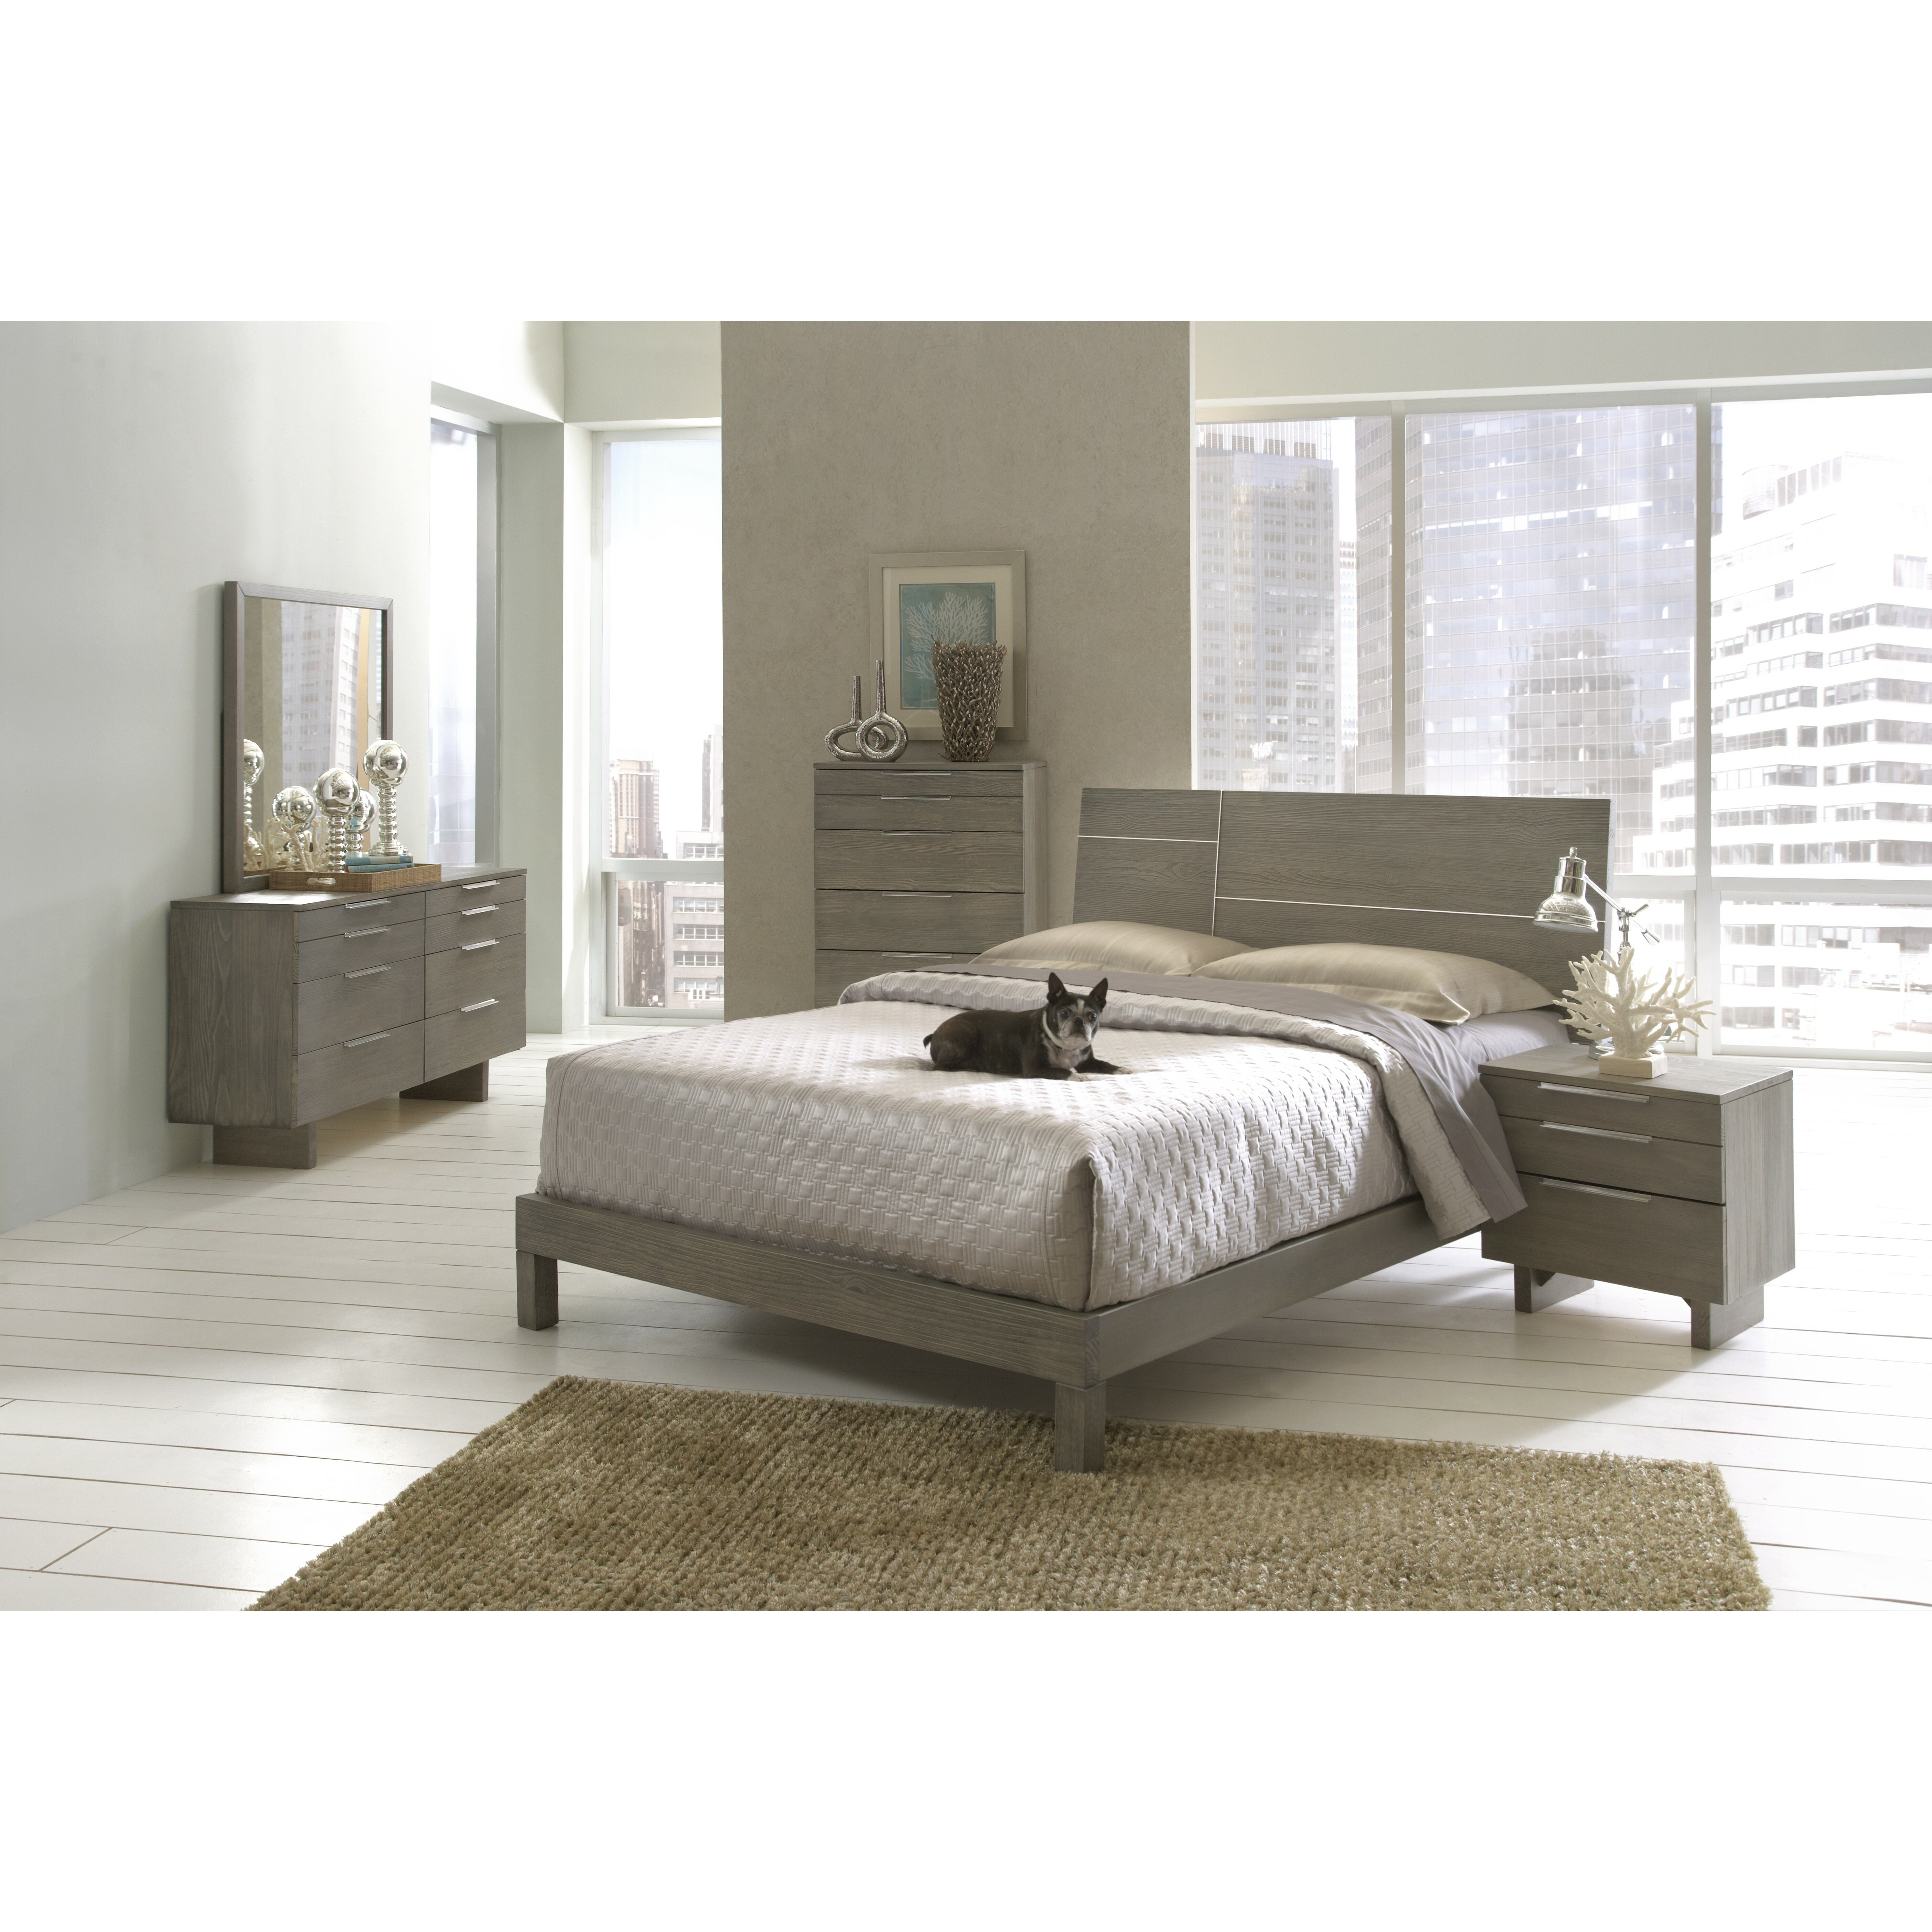 Wildon home violet platform customizable bedroom set for Furniture bedroom furniture